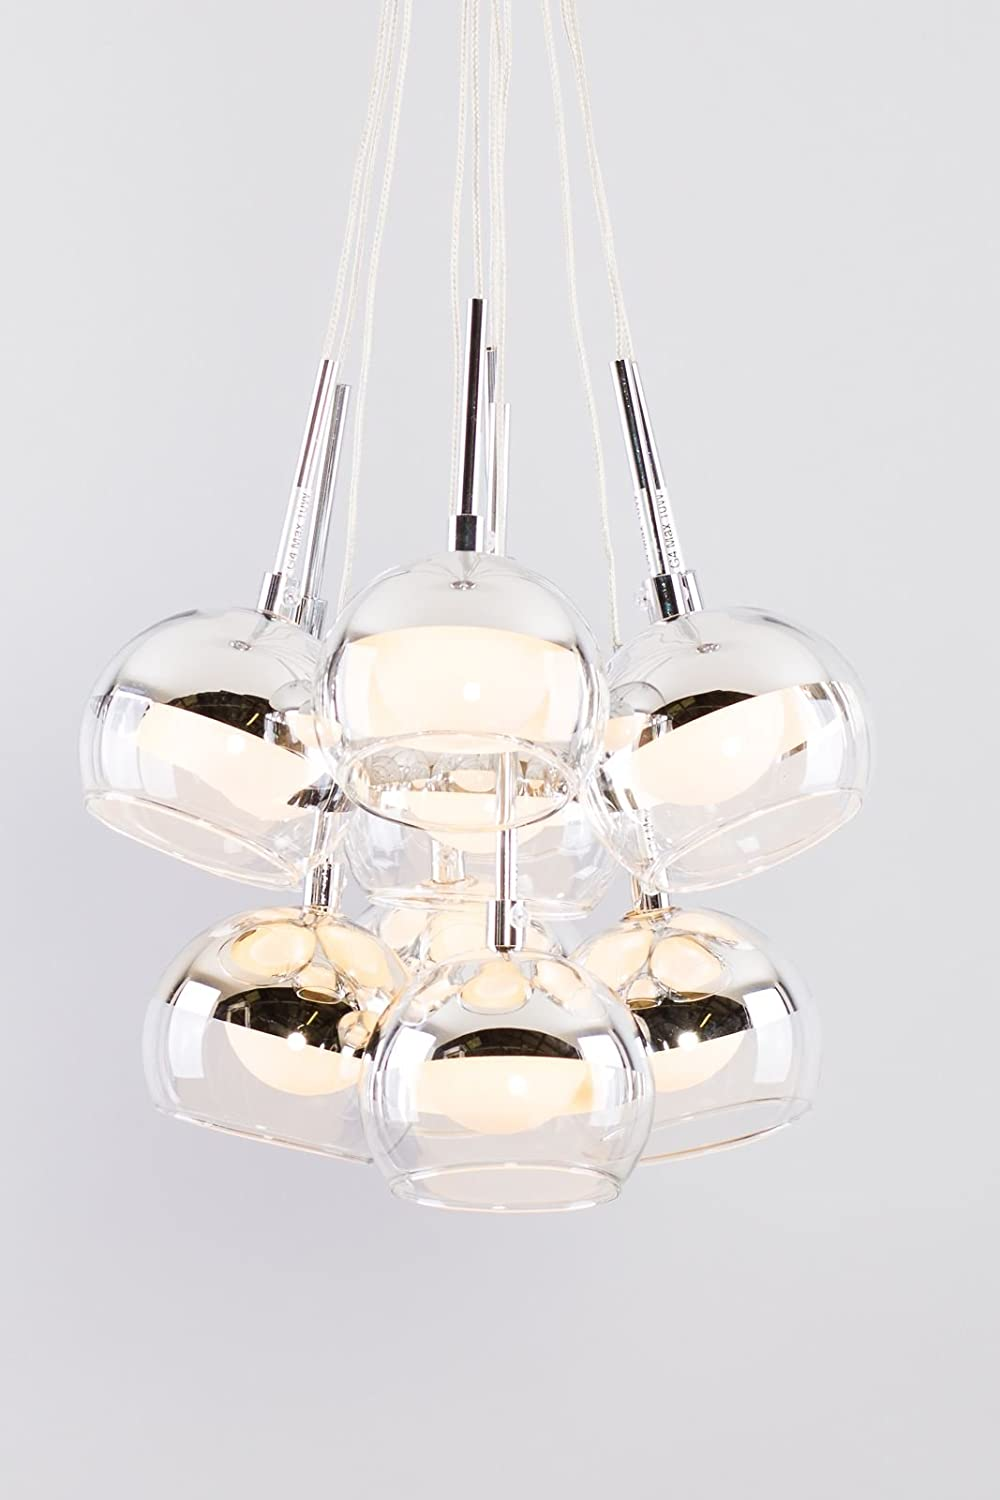 Glass dome contemporary design with chrome effect eleven light glass dome contemporary design with chrome effect eleven light pendant light with clear wire ceiling light ideal for living room kids room dining room aloadofball Choice Image